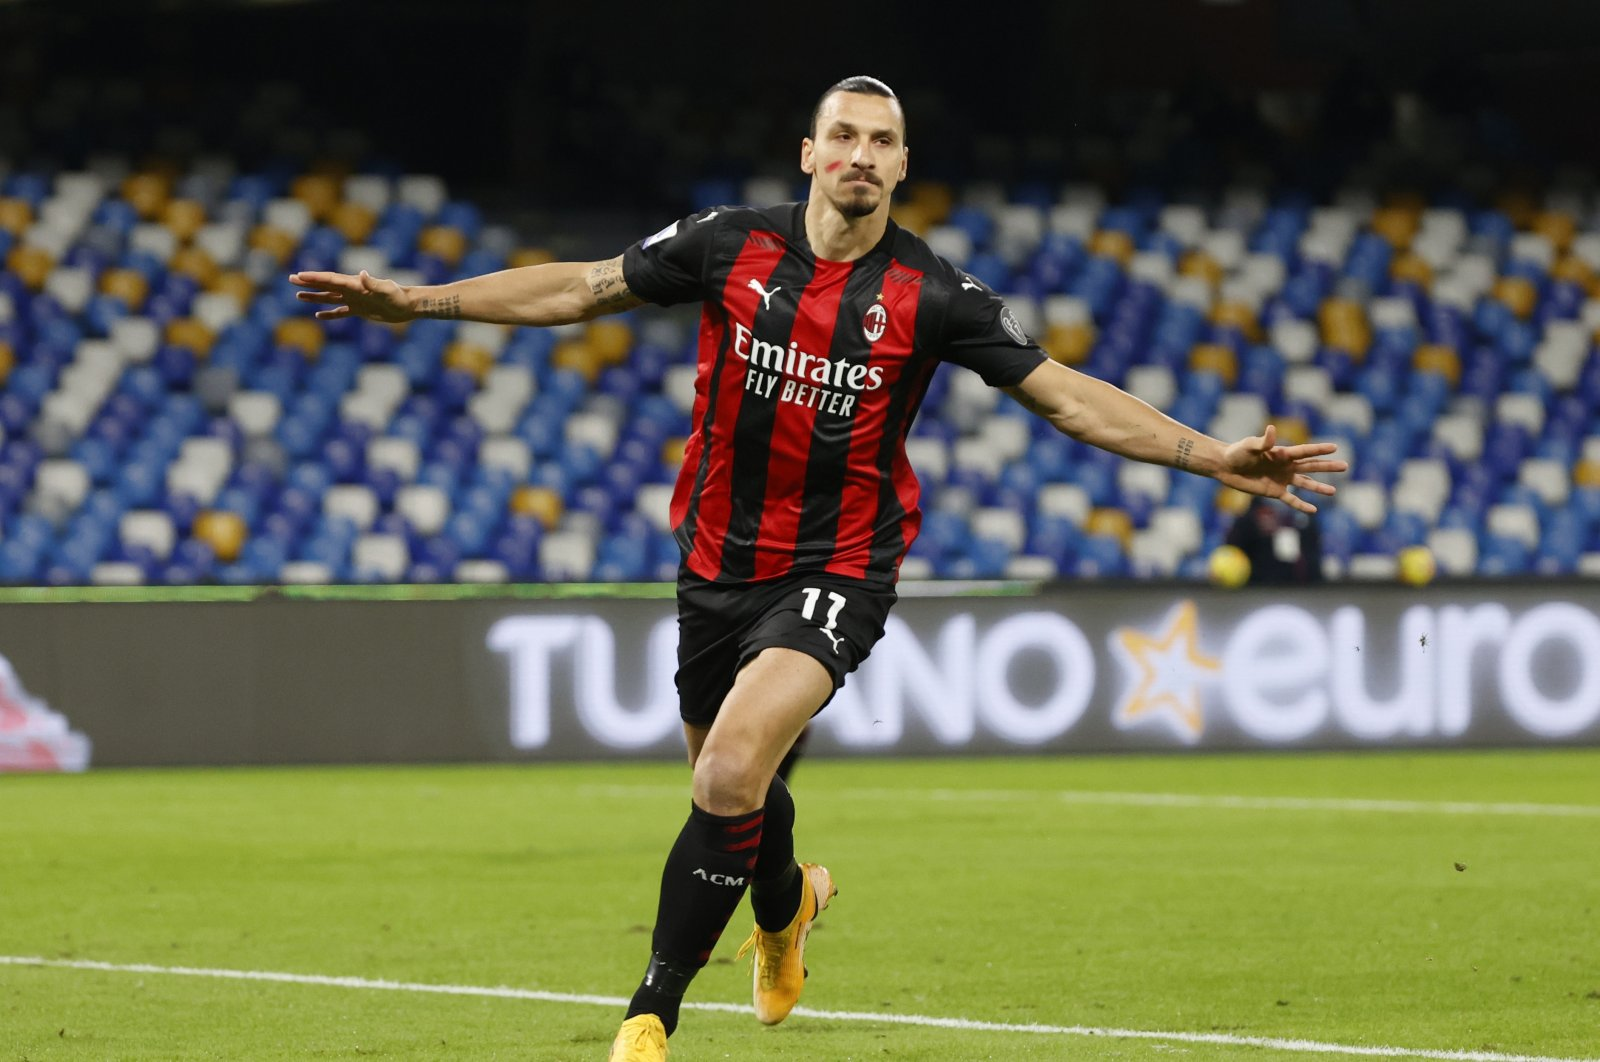 AC Milan's Zlatan Ibrahimovic celebrates after scoring his team's first goal against Napoli while wearing red face paint to raise awareness of domestic violence against women, Naples, Italy, Nov. 22, 2020. (Reuters Photo)